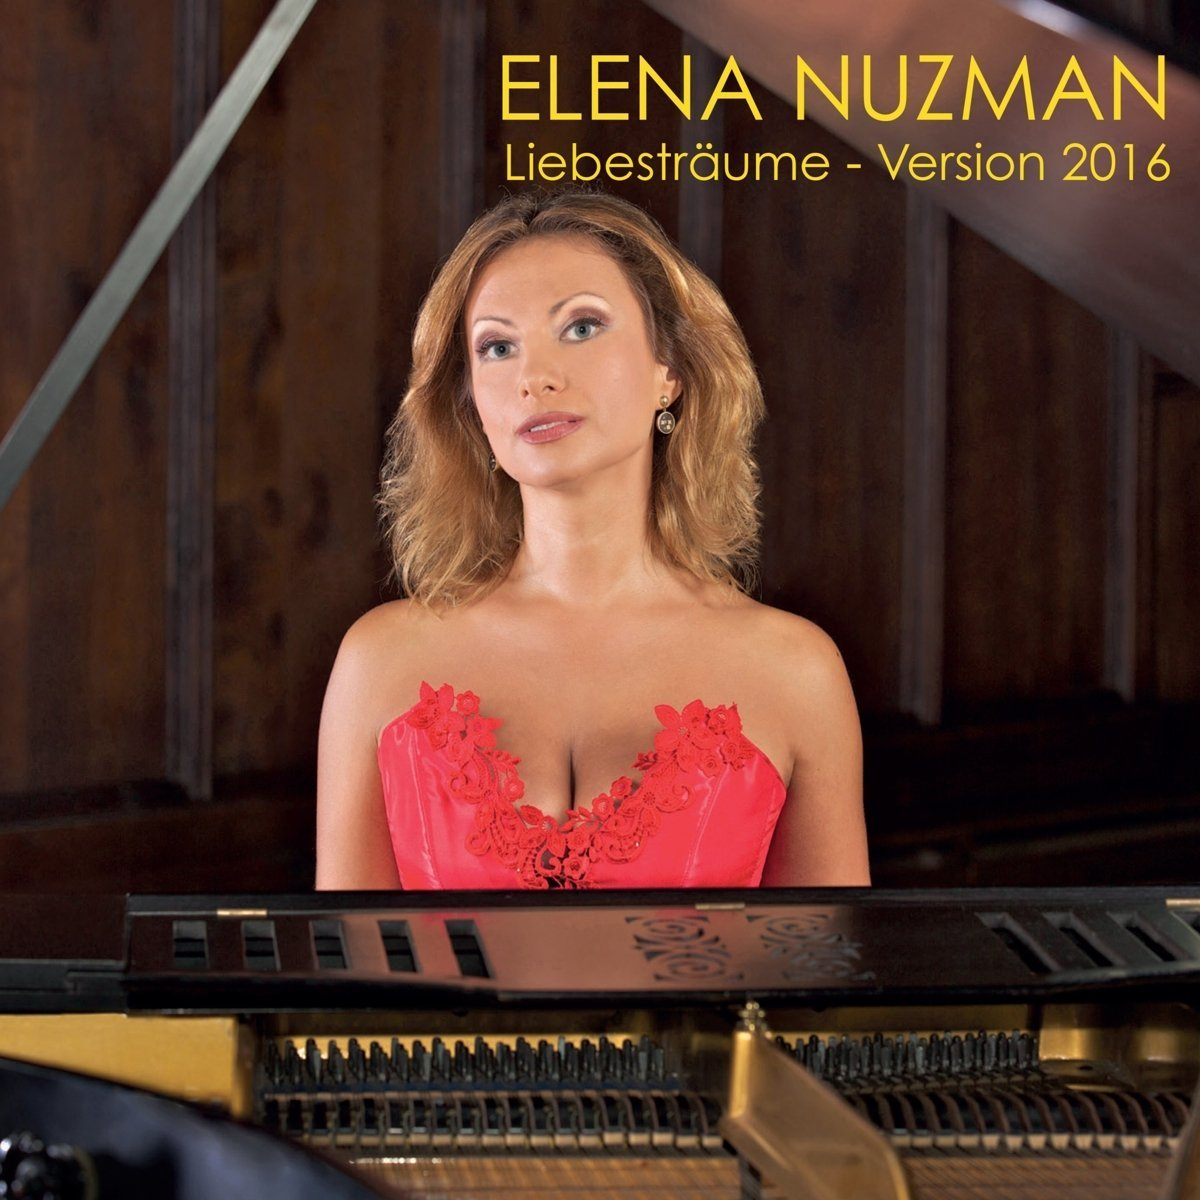 Elena Nuzman Dreams of love - Album 2016